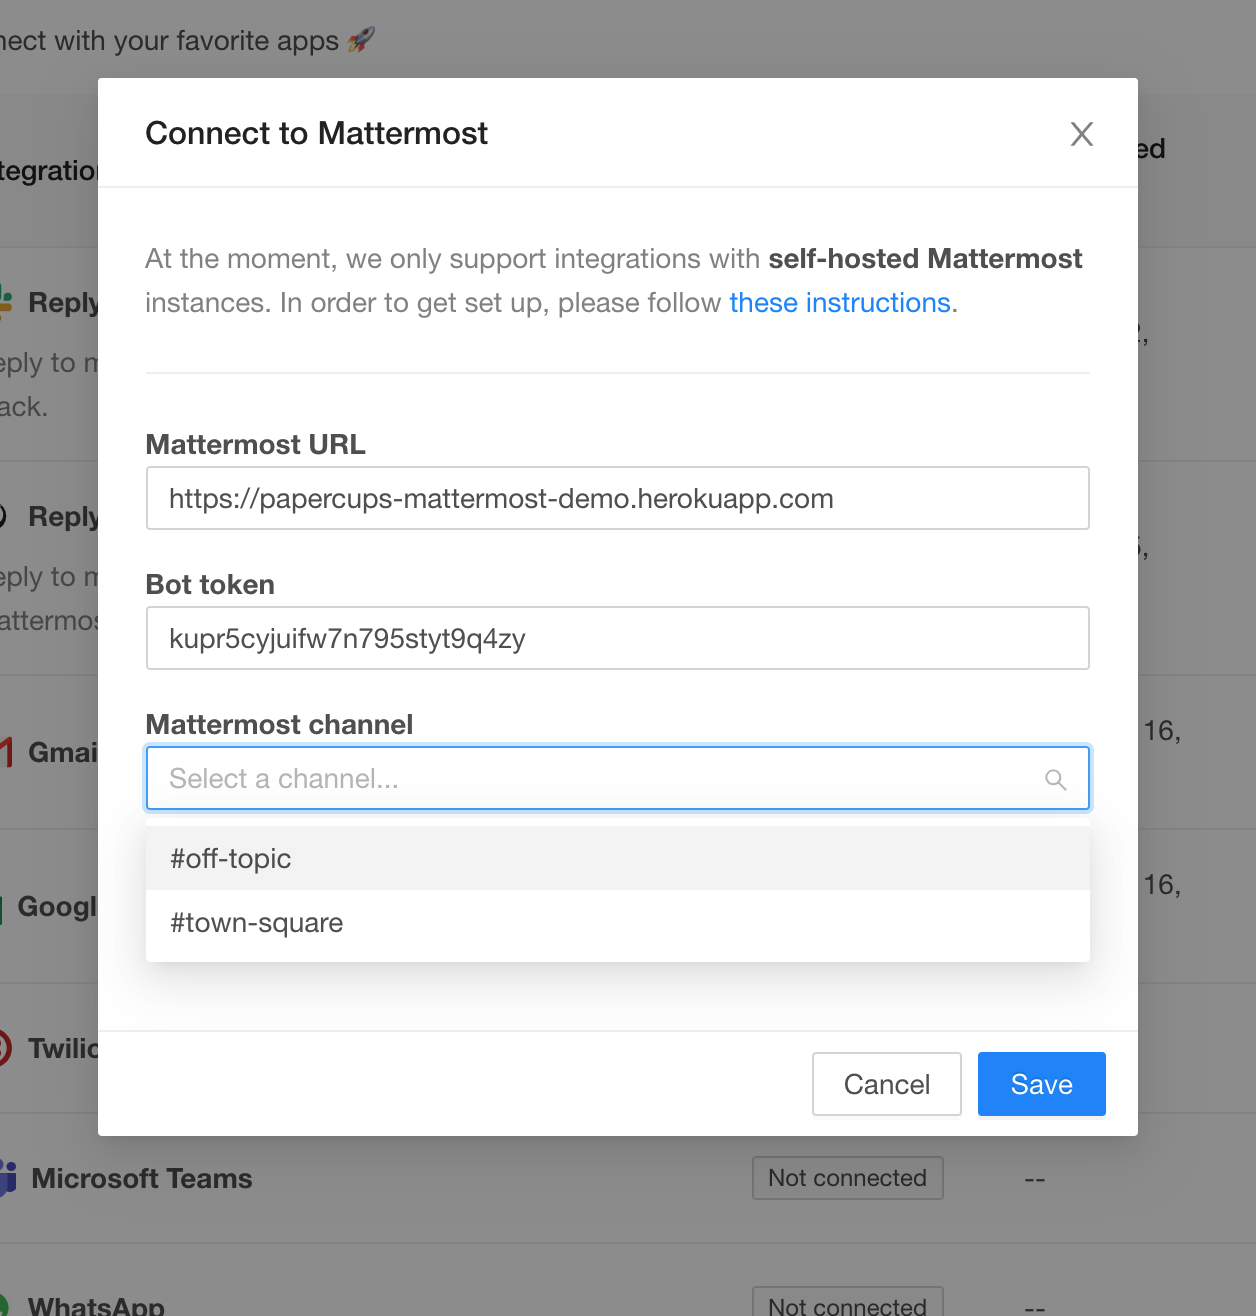 Select Mattermost channel